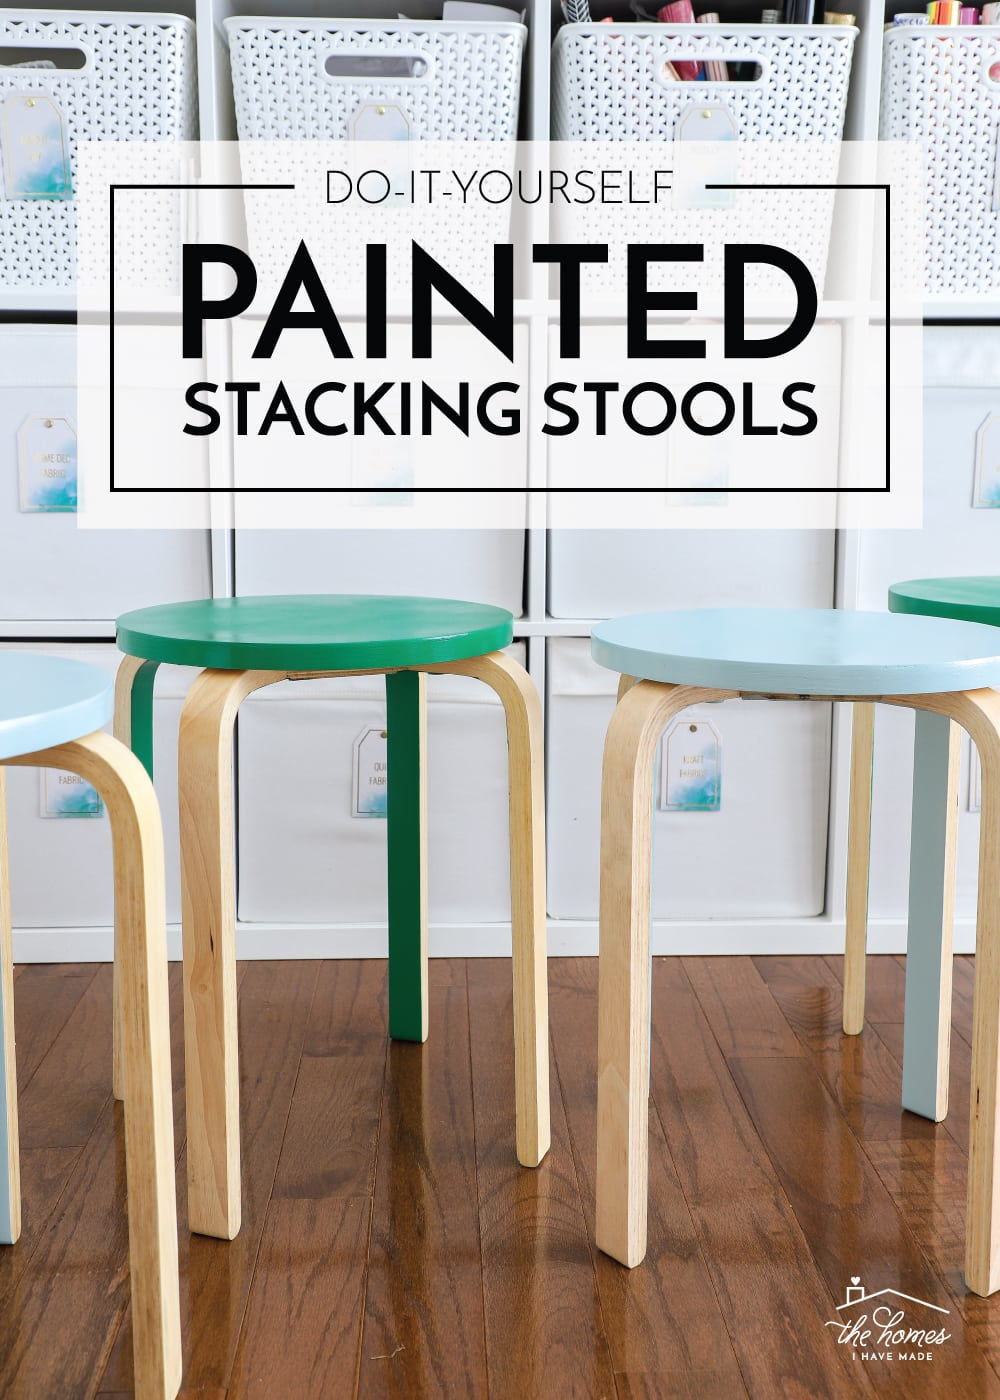 Painted Stacking Stools